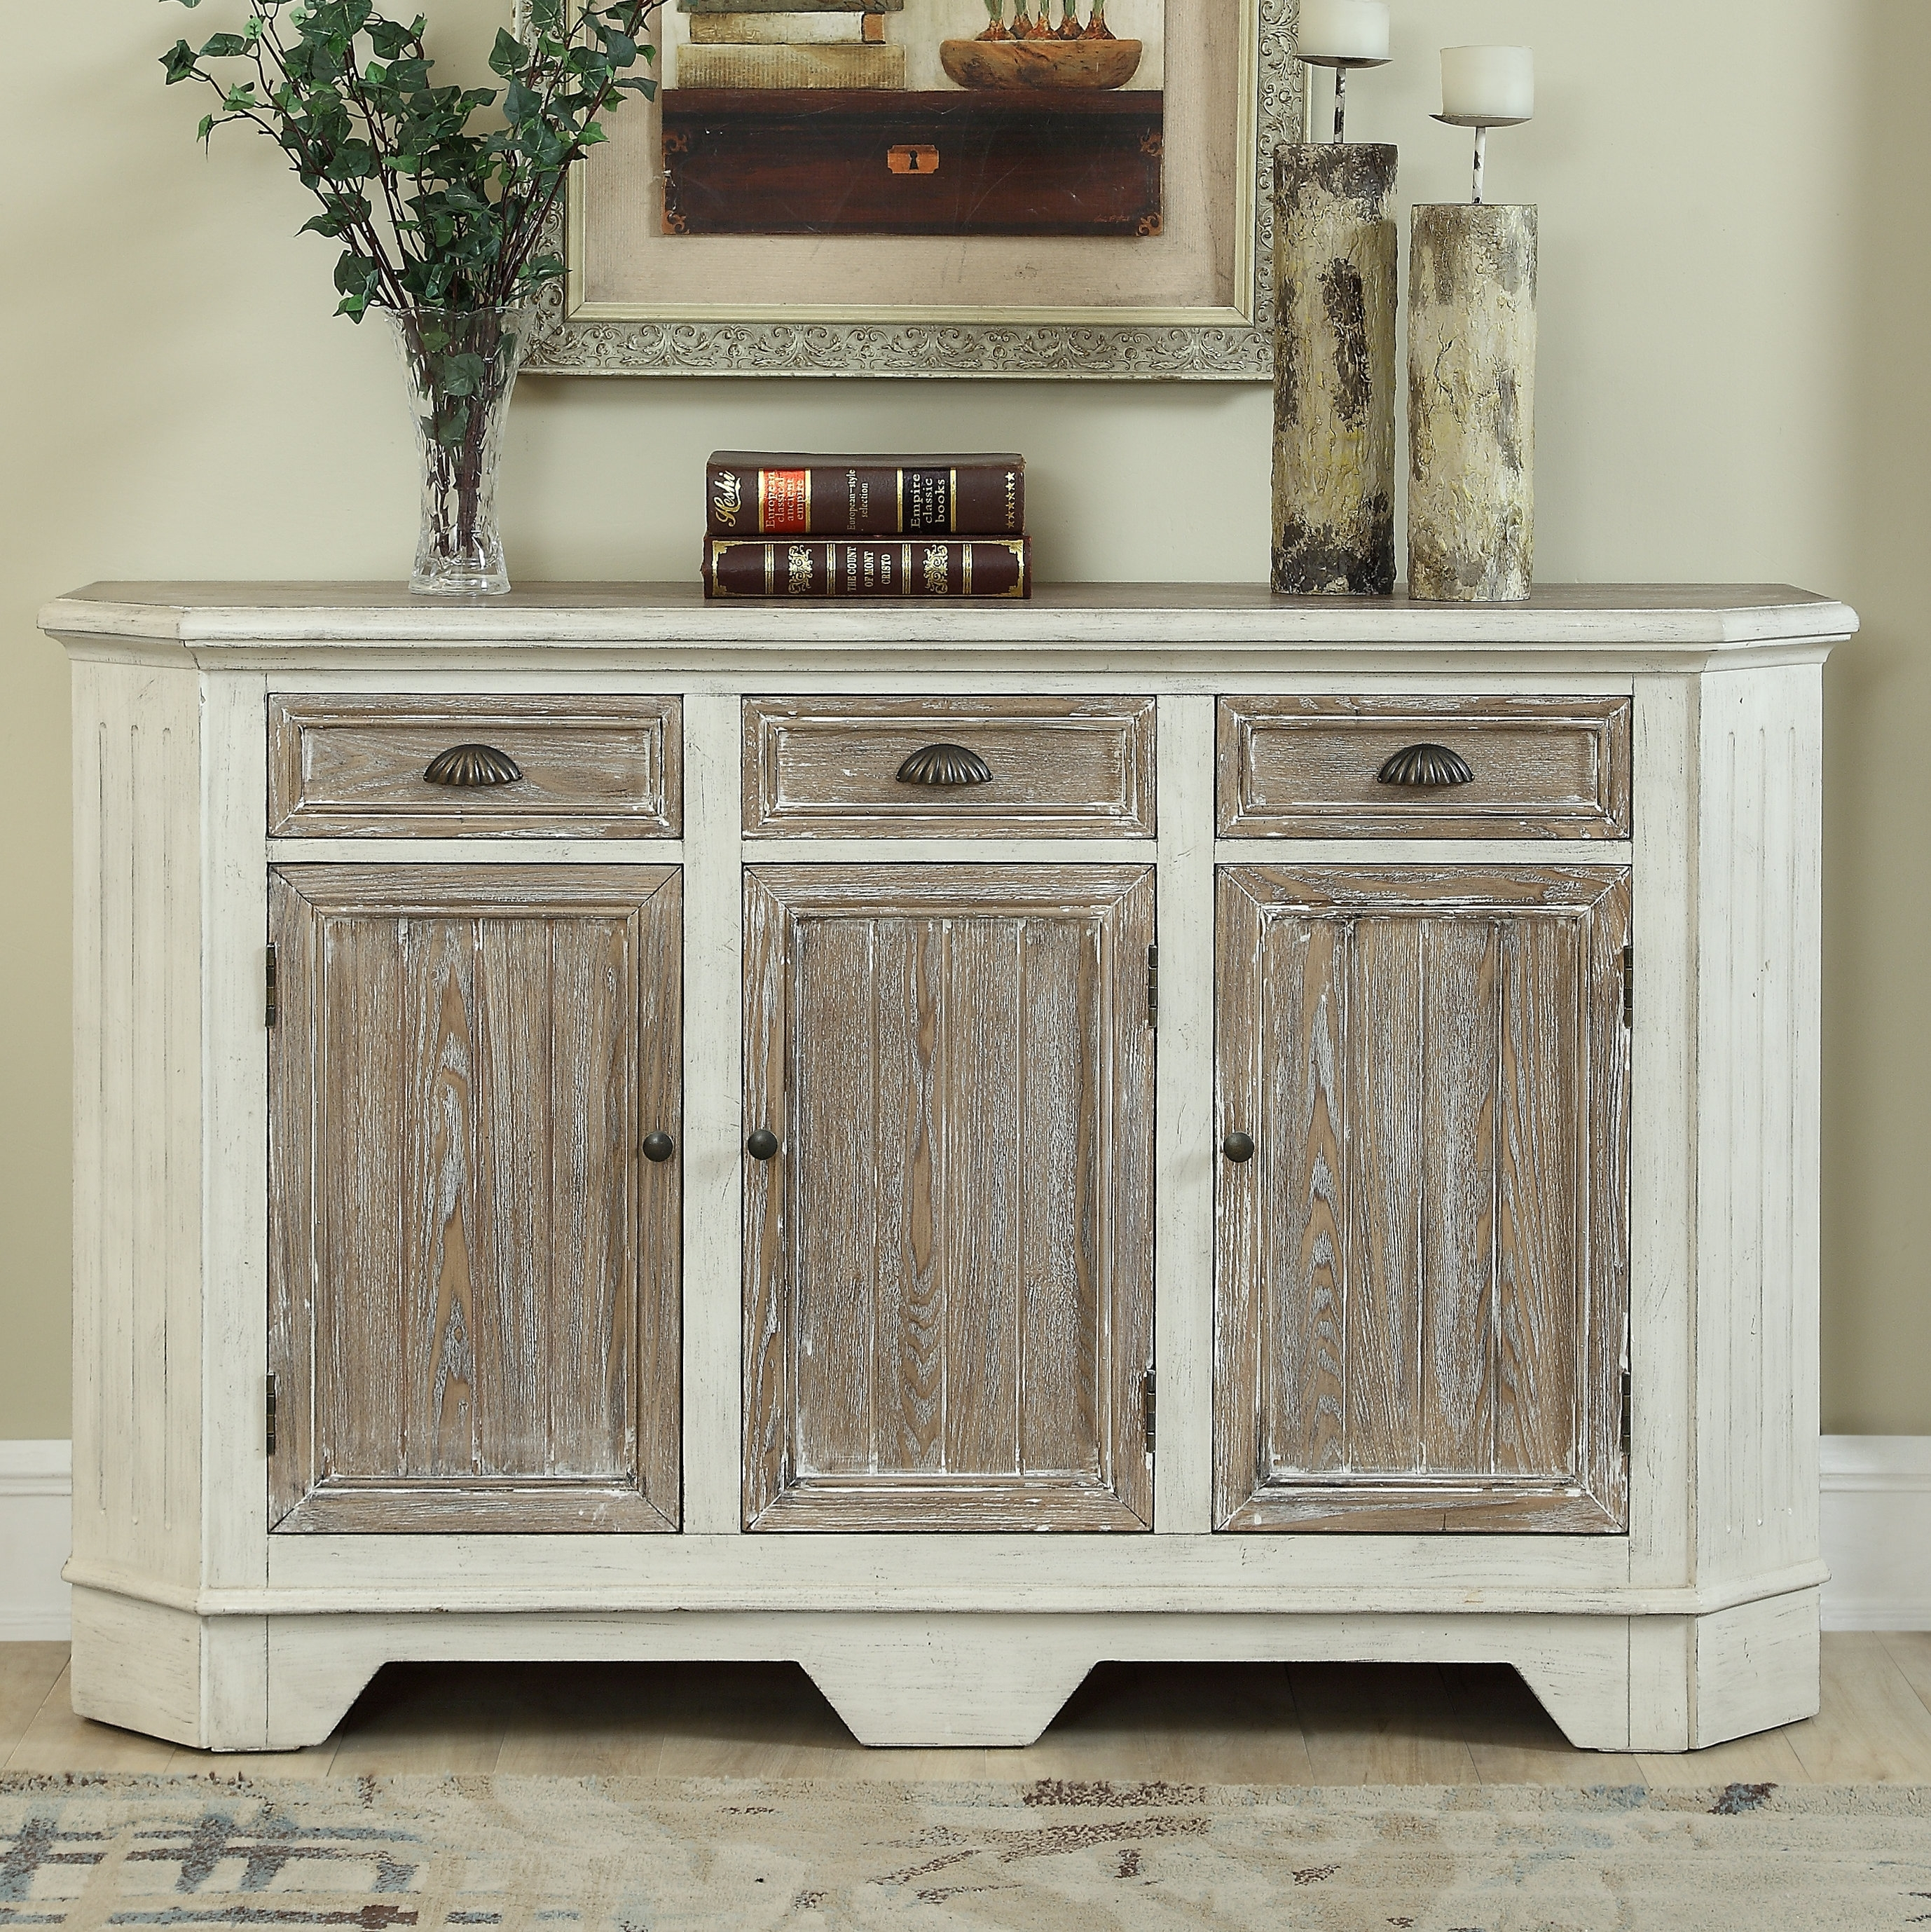 Highland Dunes Funkhouser 3 Door 3 Drawer Sideboard | Wayfair Pertaining To Best And Newest Solar Refinement Sideboards (#8 of 20)